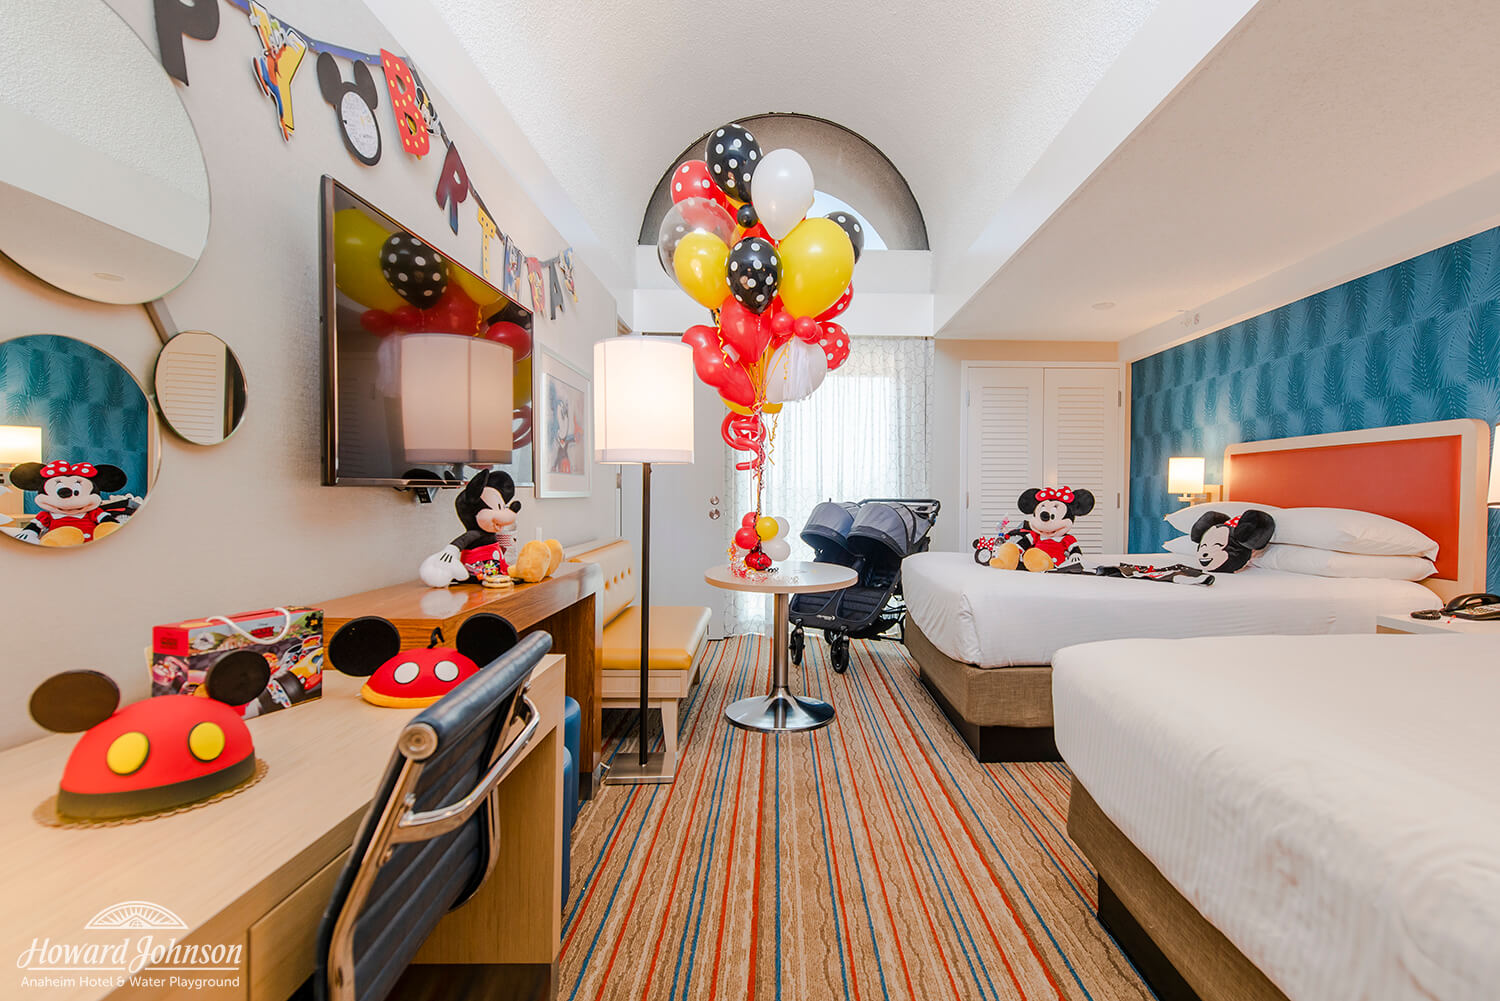 Have a ball with HoJo's magical in-room celebrations